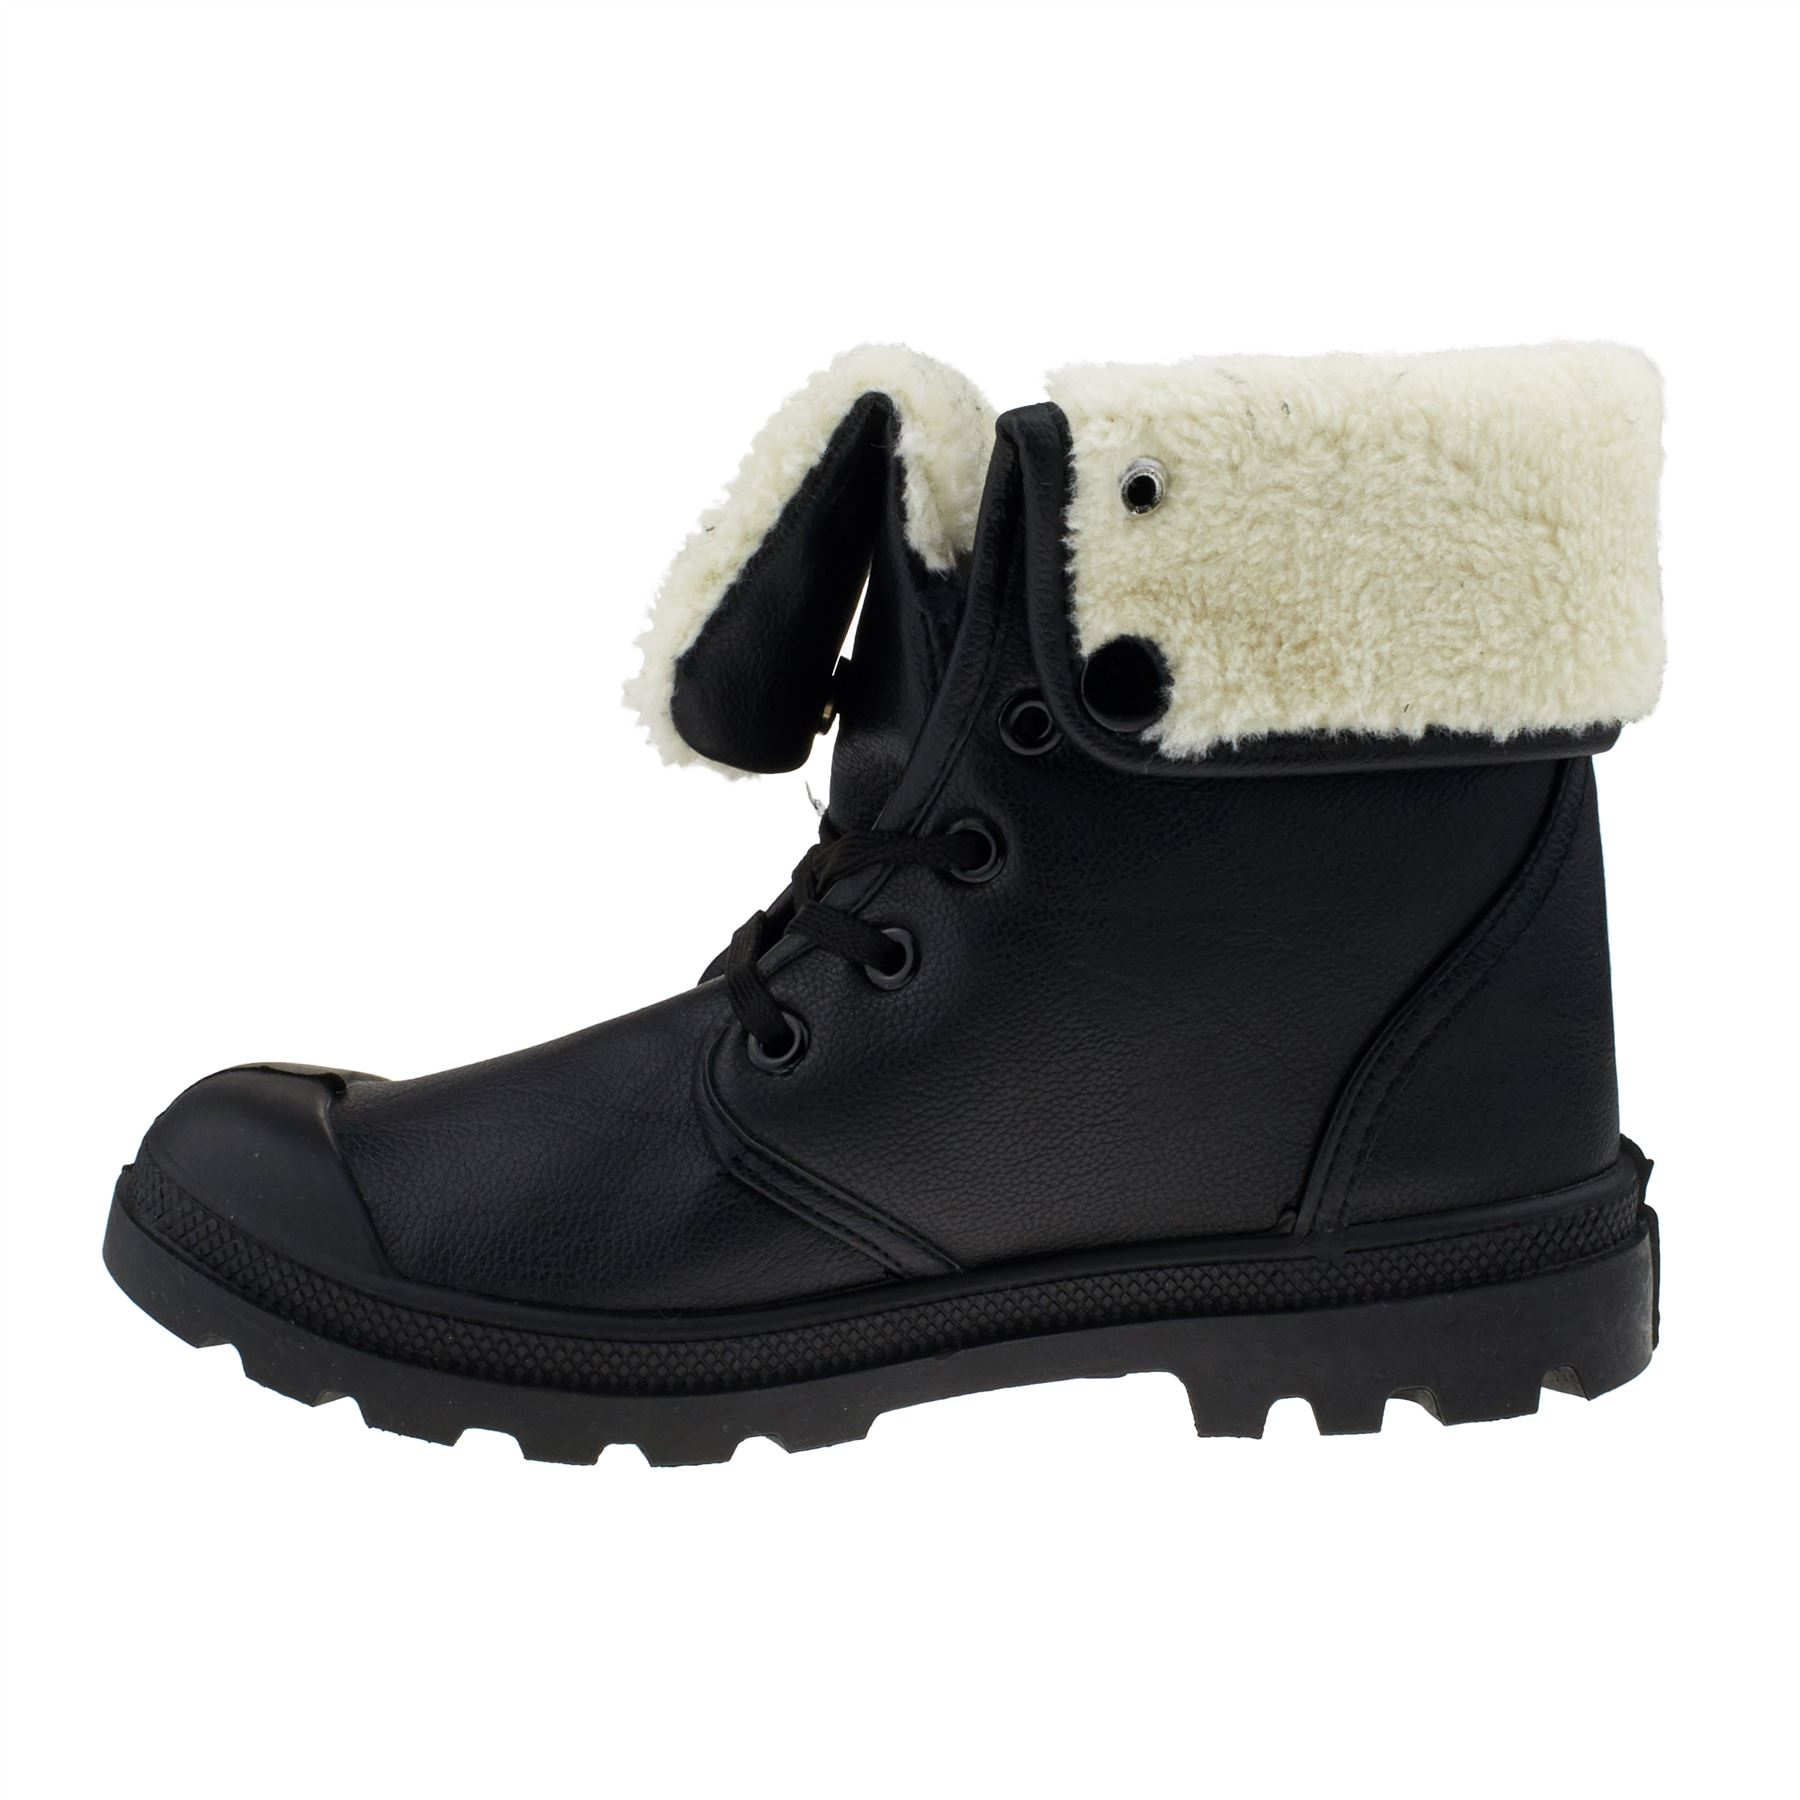 Womens Fur Lined Ankle Boots Ladies Combat Army Lace Up Shoes Winter Grip Sole